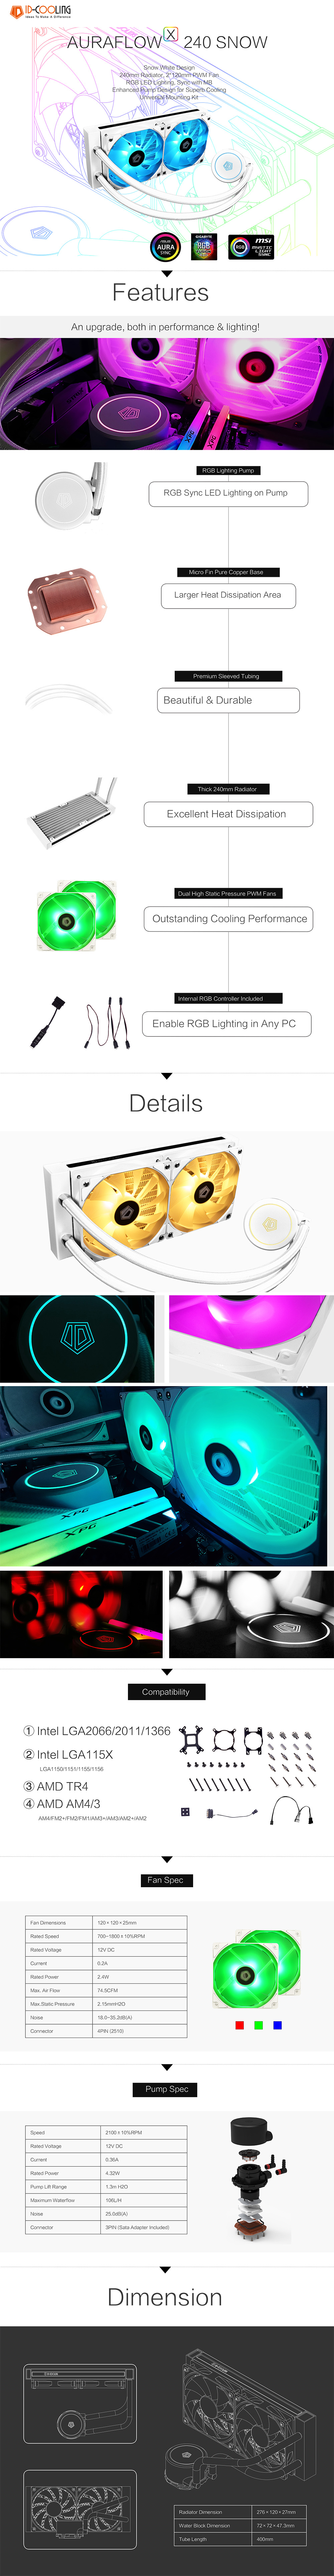 A large marketing image providing additional information about the product ID-COOLING AuraFlow X 240 SNOW AIO CPU Liquid Cooler - Additional alt info not provided